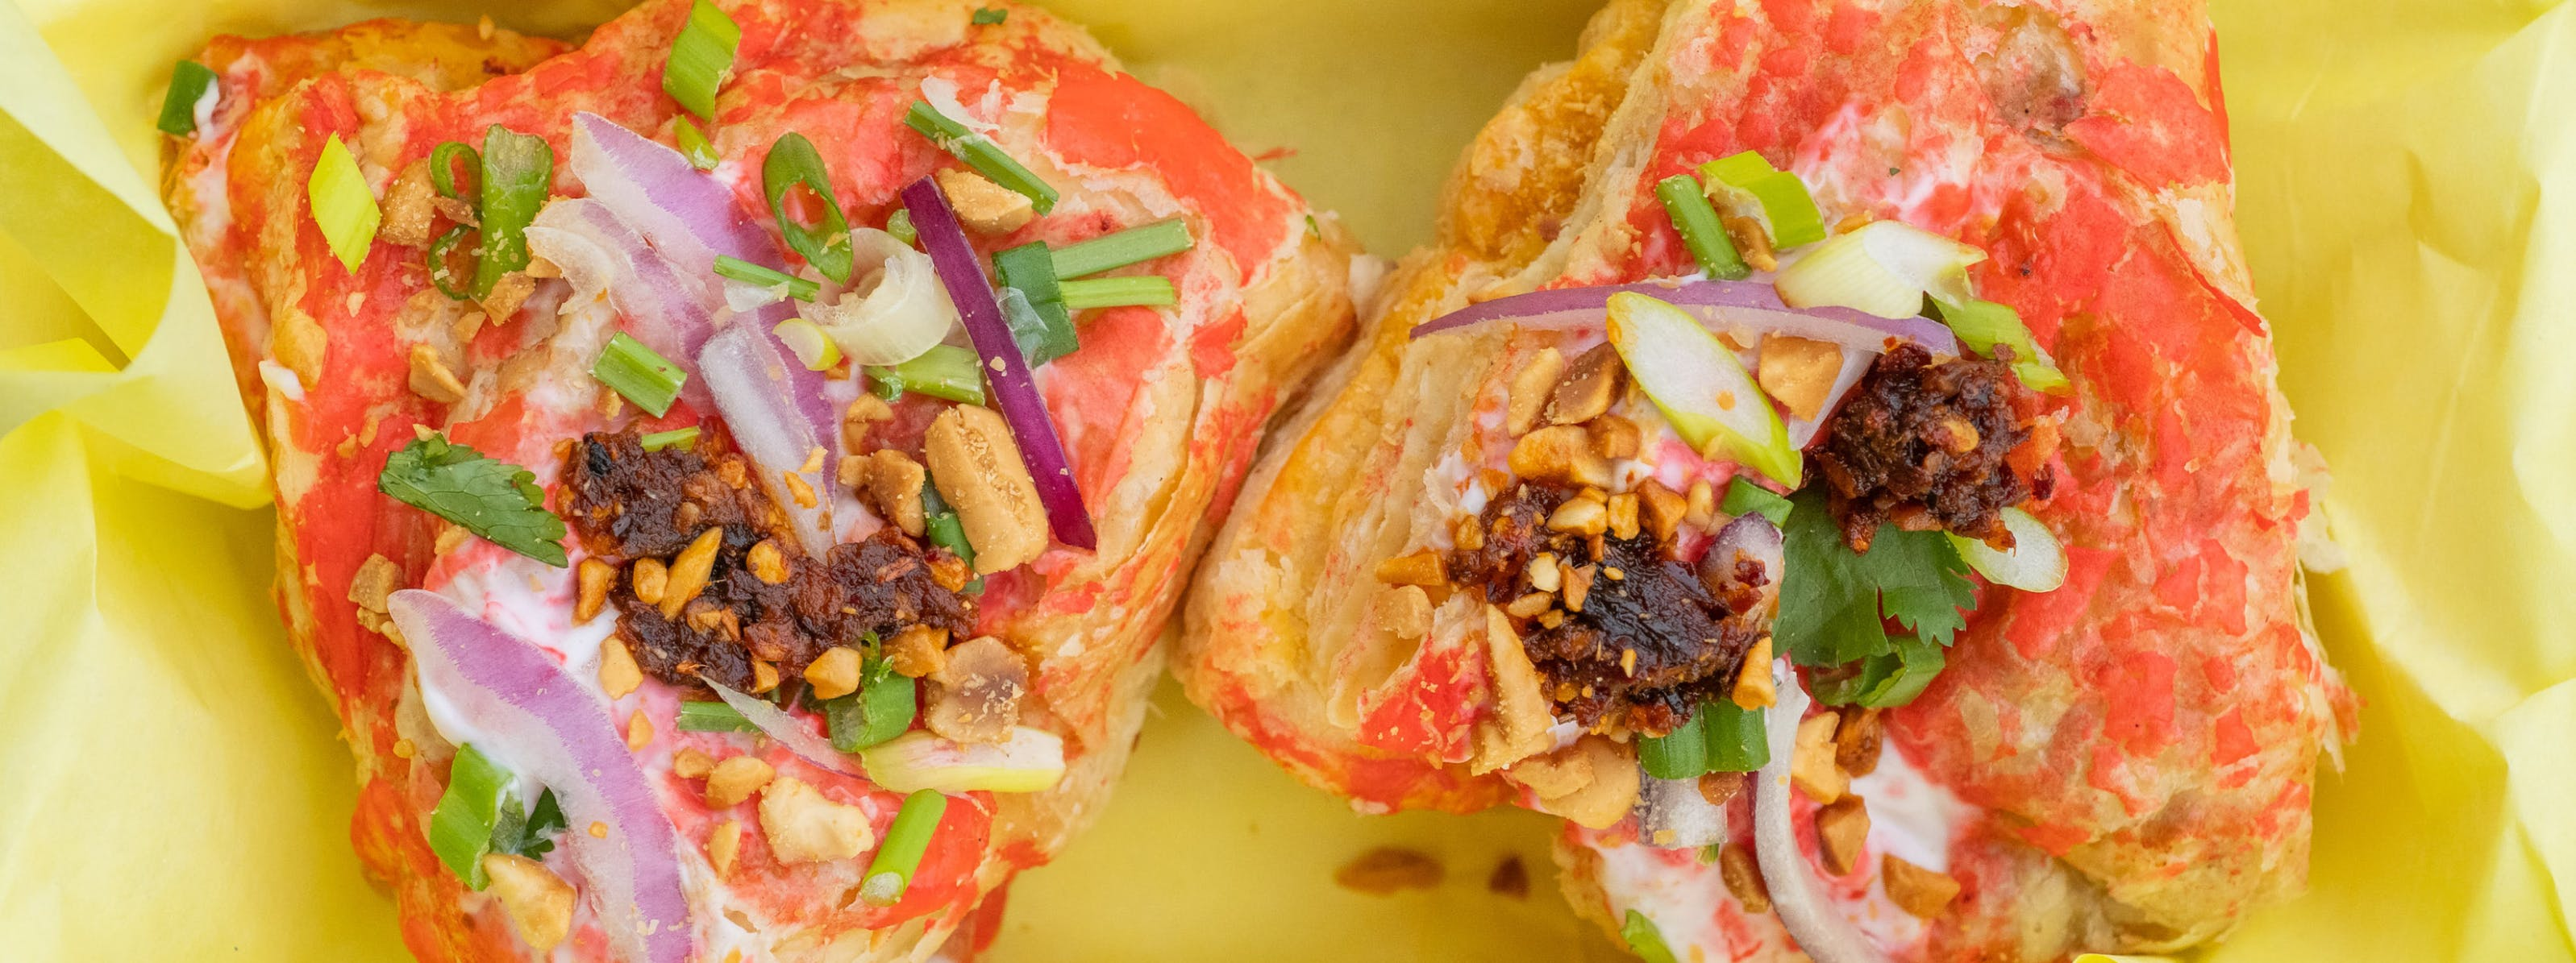 What To Eat At Spice Bridge, A New Food Hall In Tukwila - Tukwila - Seattle - The Infatuation